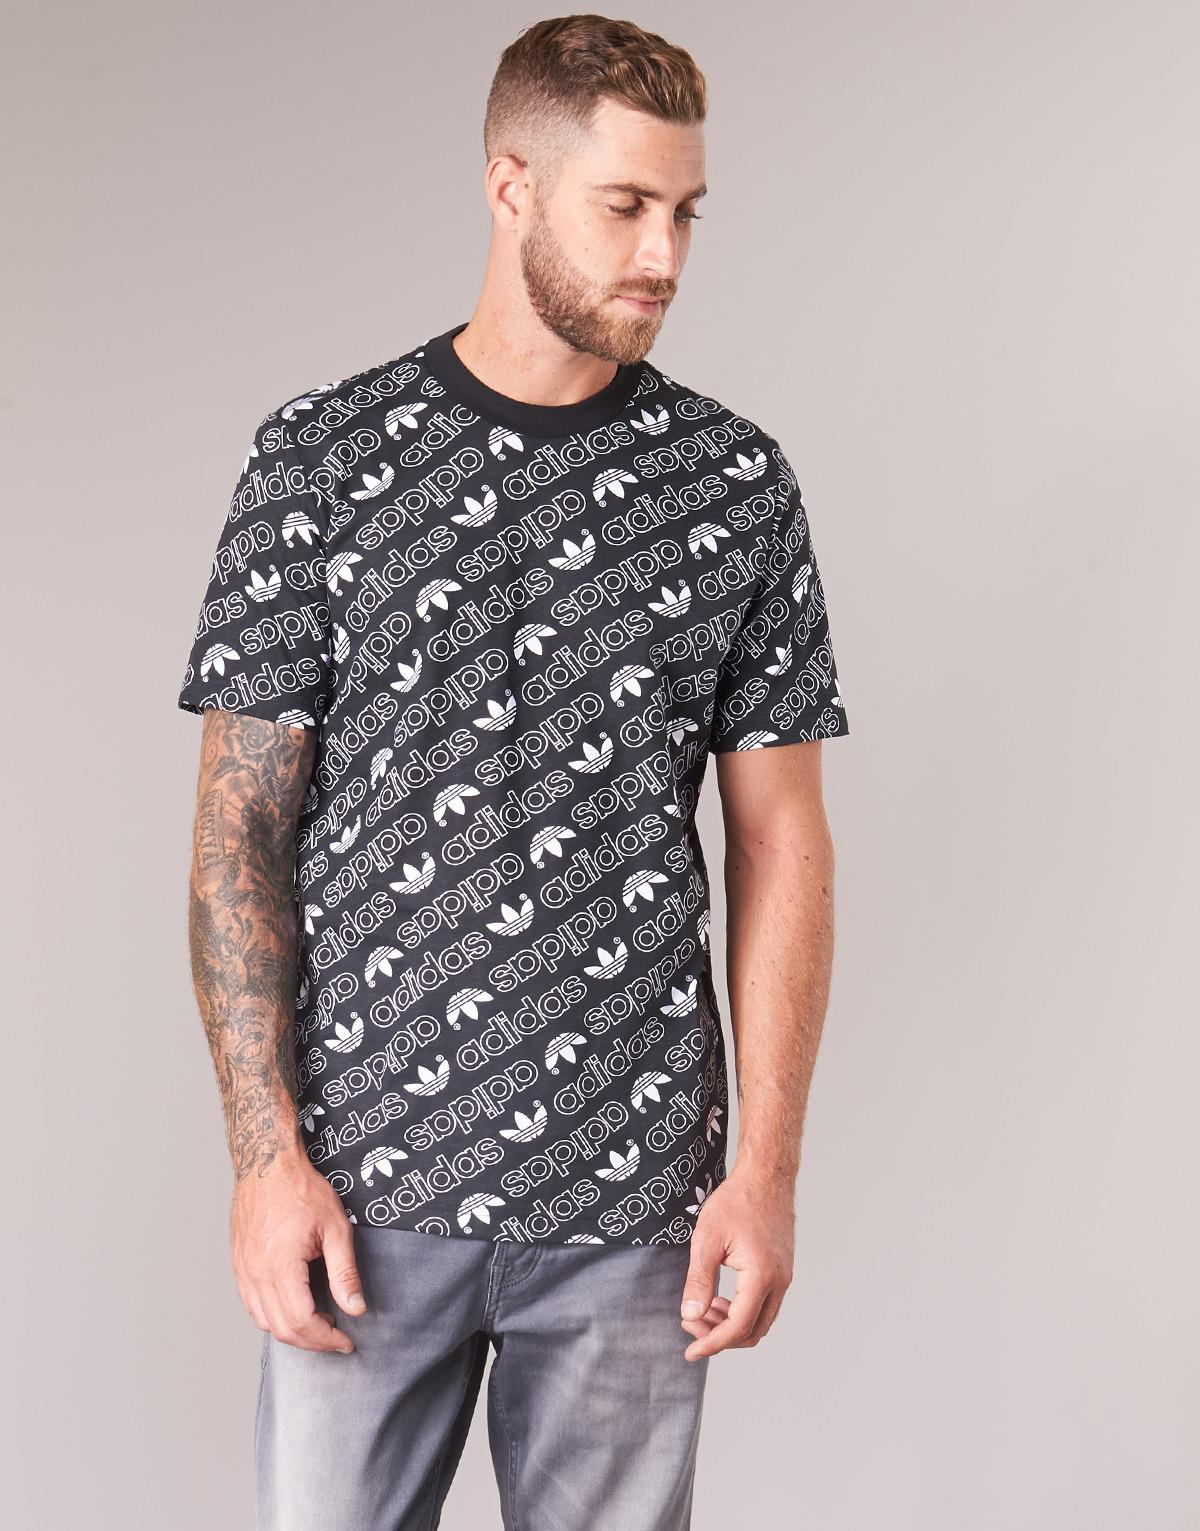 a1f51fad adidas Monogram Tee Men's T Shirt In Black in Black for Men - Save 67% -  Lyst